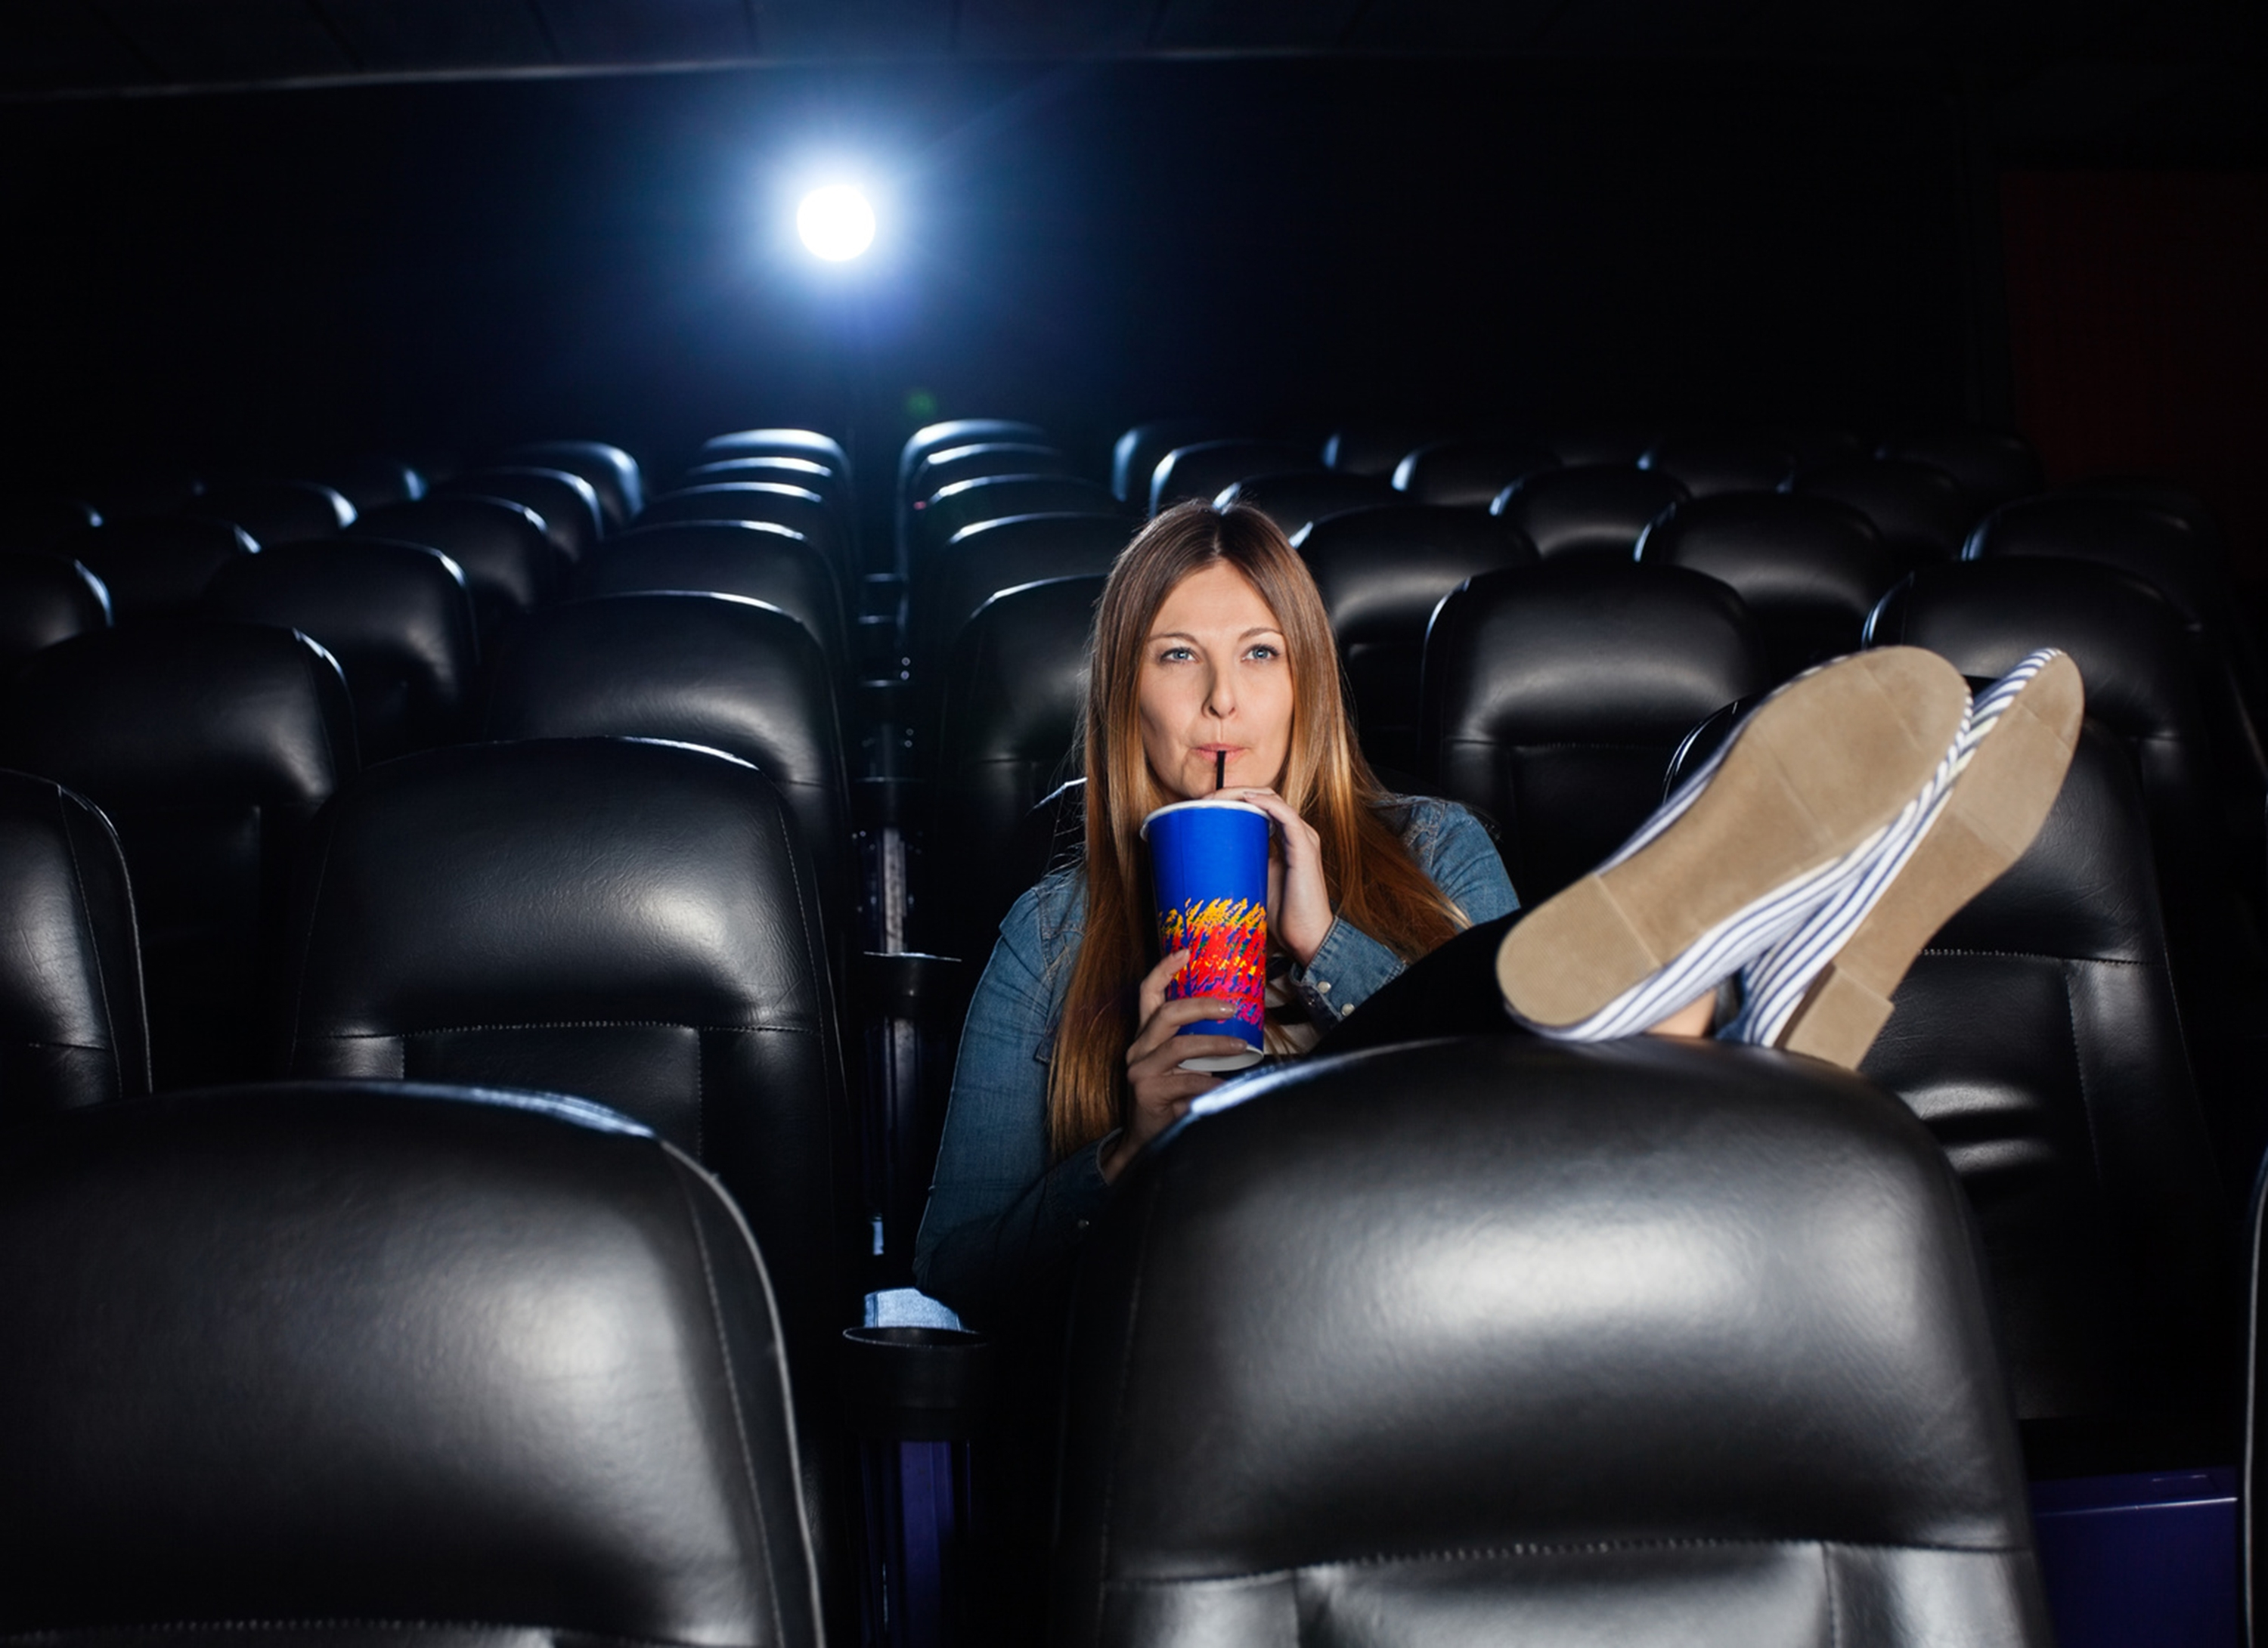 Most said they would see a movie in a theater with friends, but less than 30 percent said they would see a movie in a theater alone.